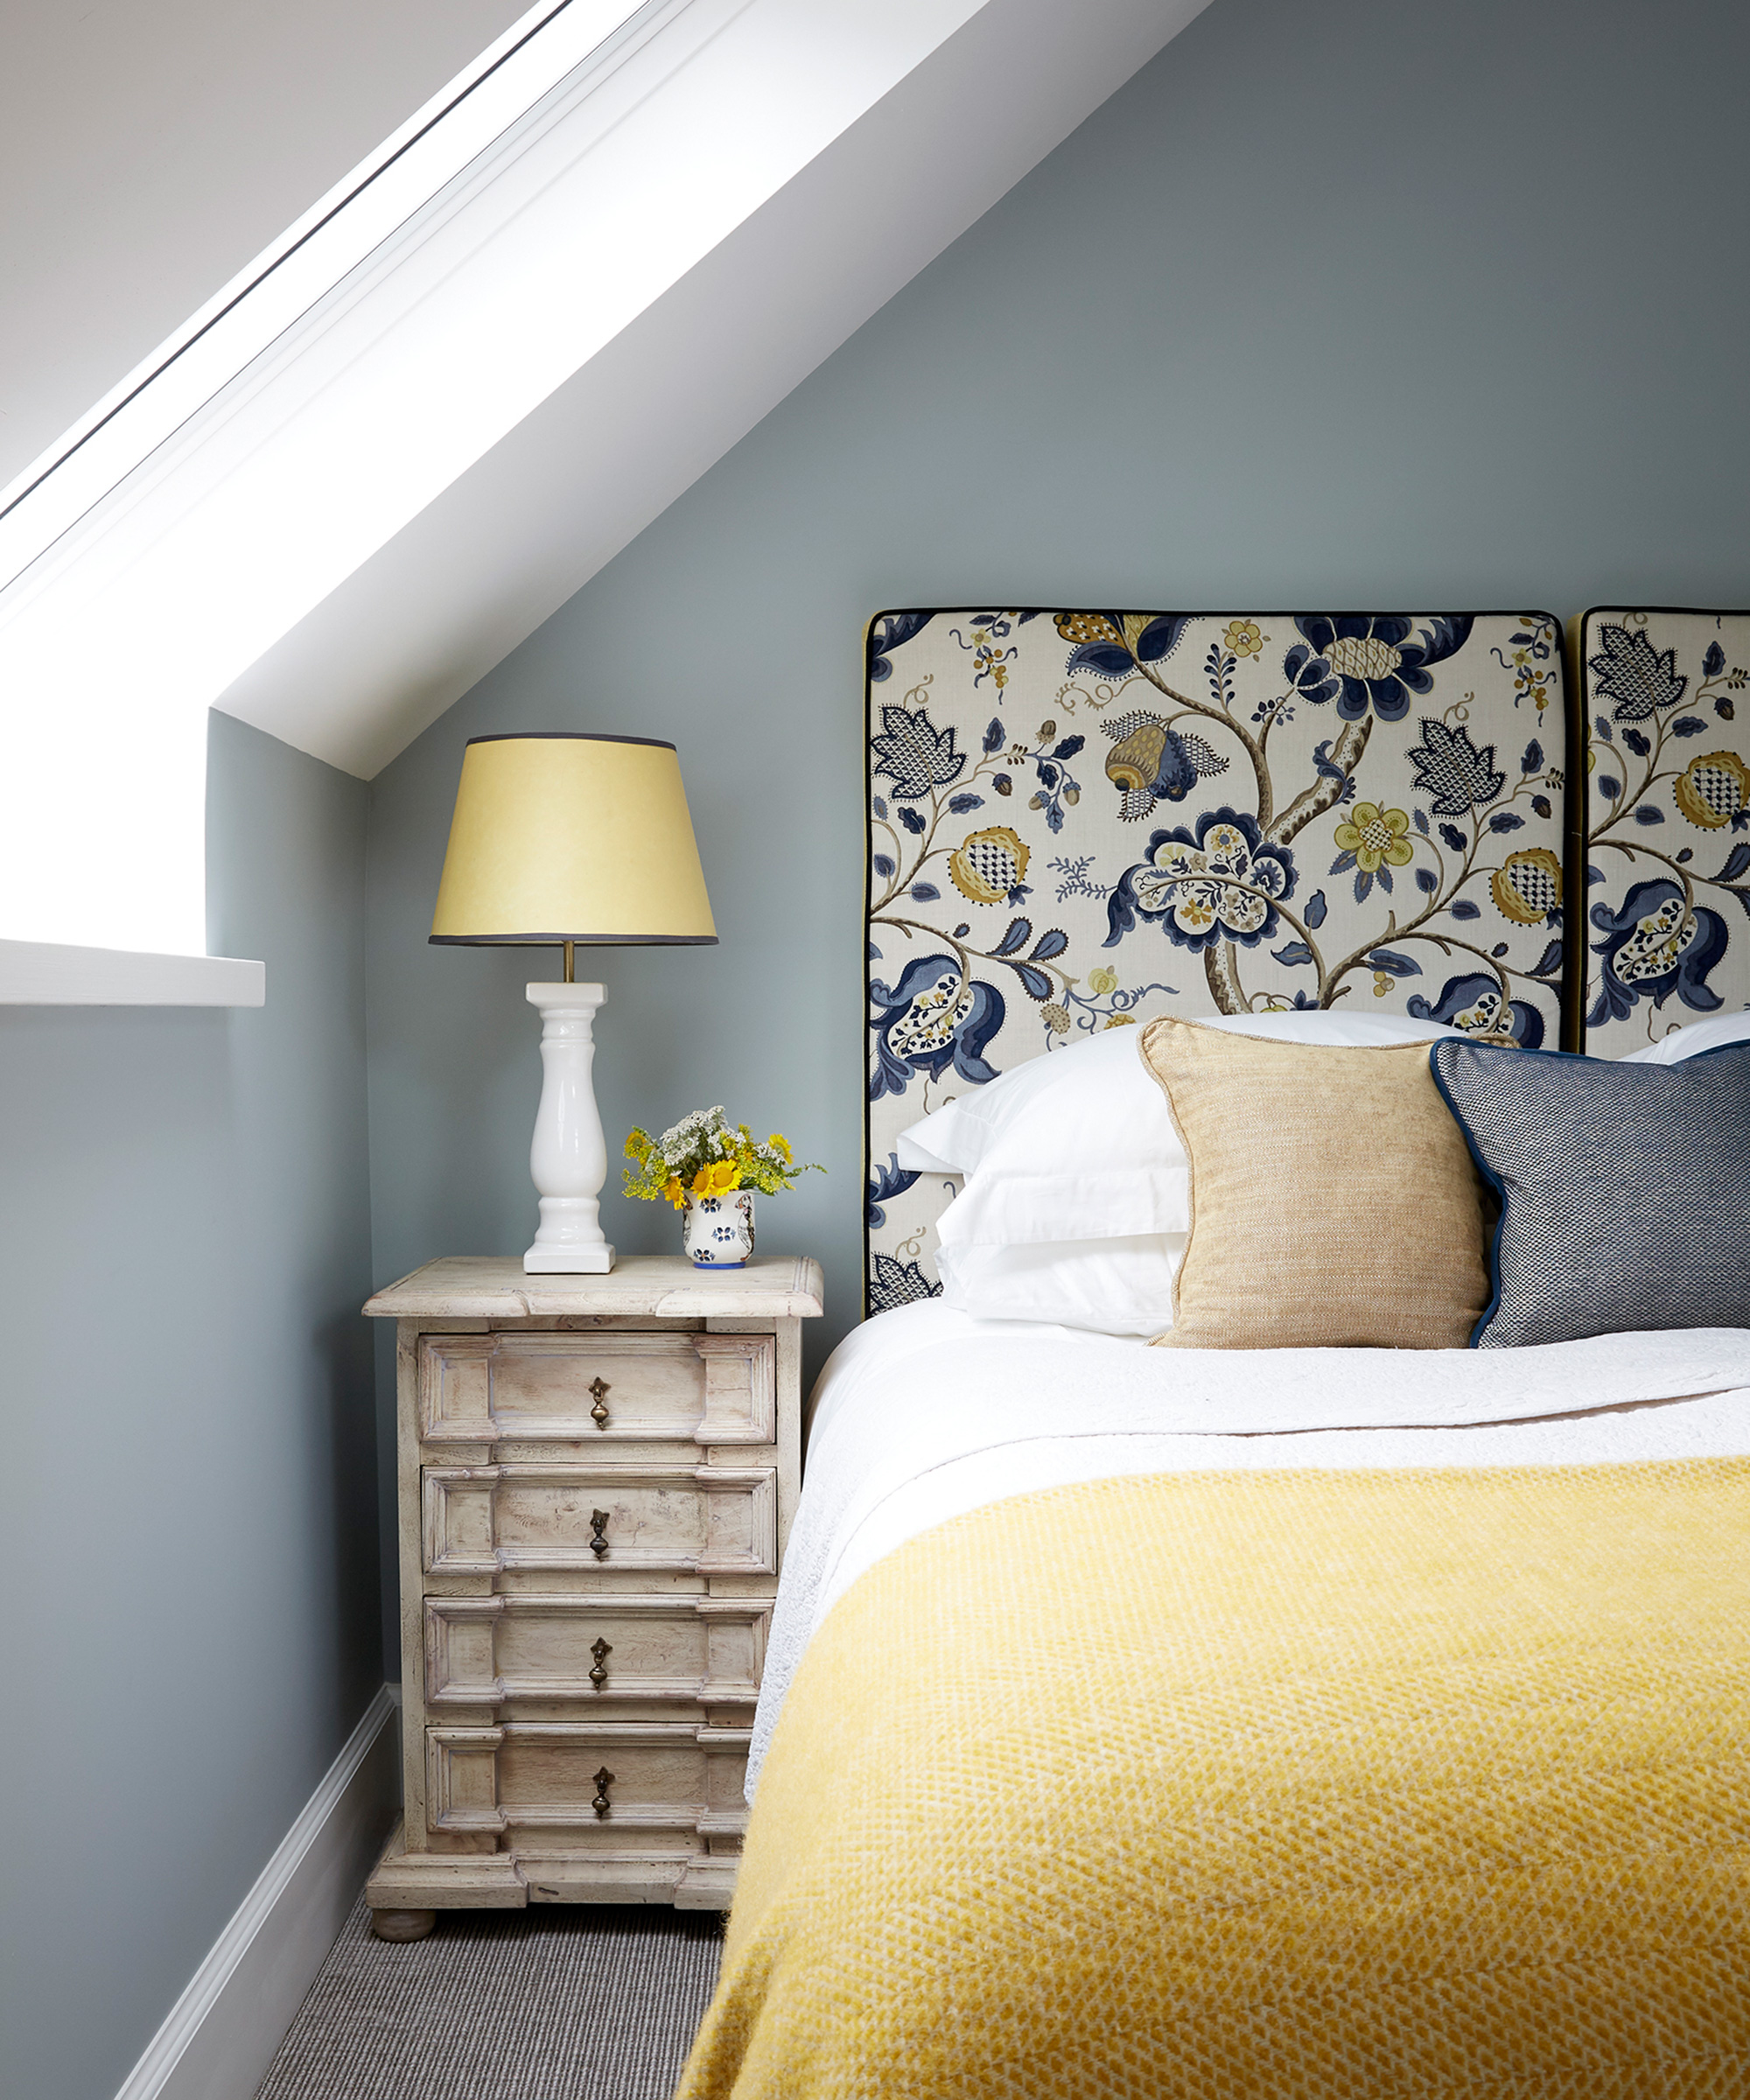 Bedroom trends – the latest looks for your bedroom